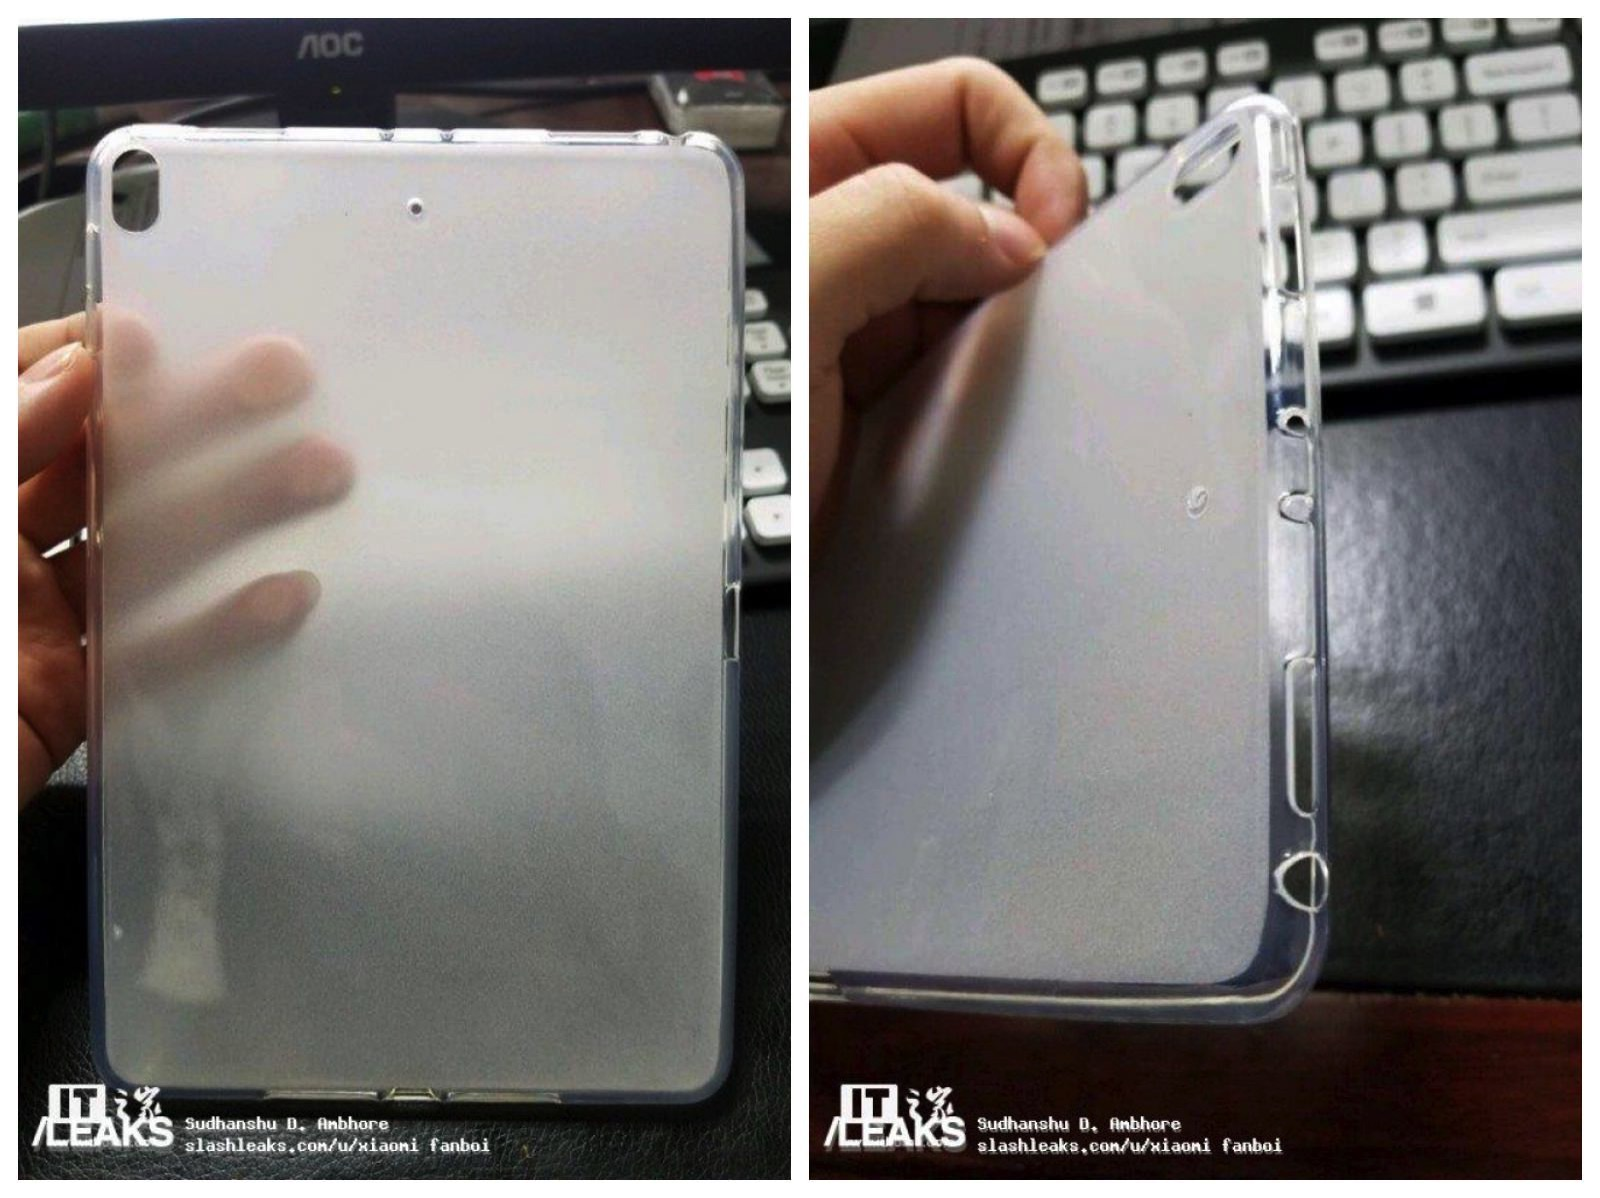 Ipad mini 5 is probably fake